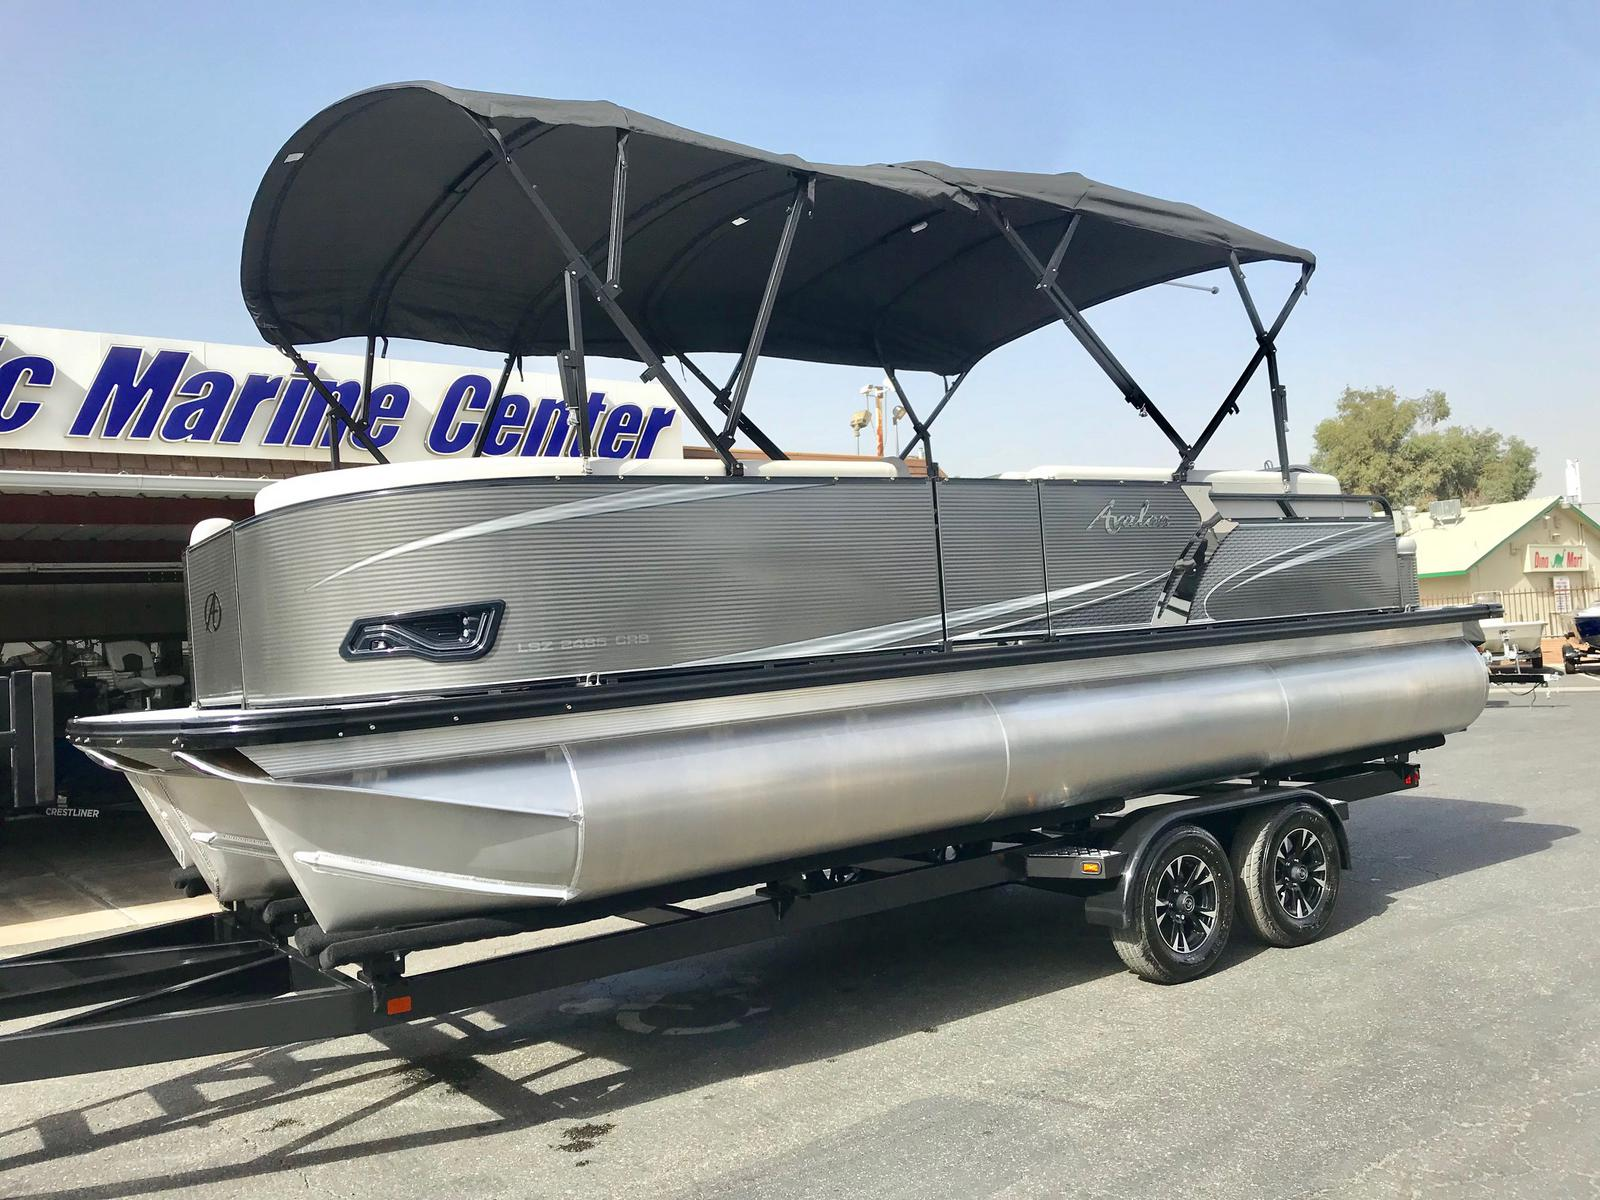 In-Stock New and Used Models For Sale in Madera, CA Pacific